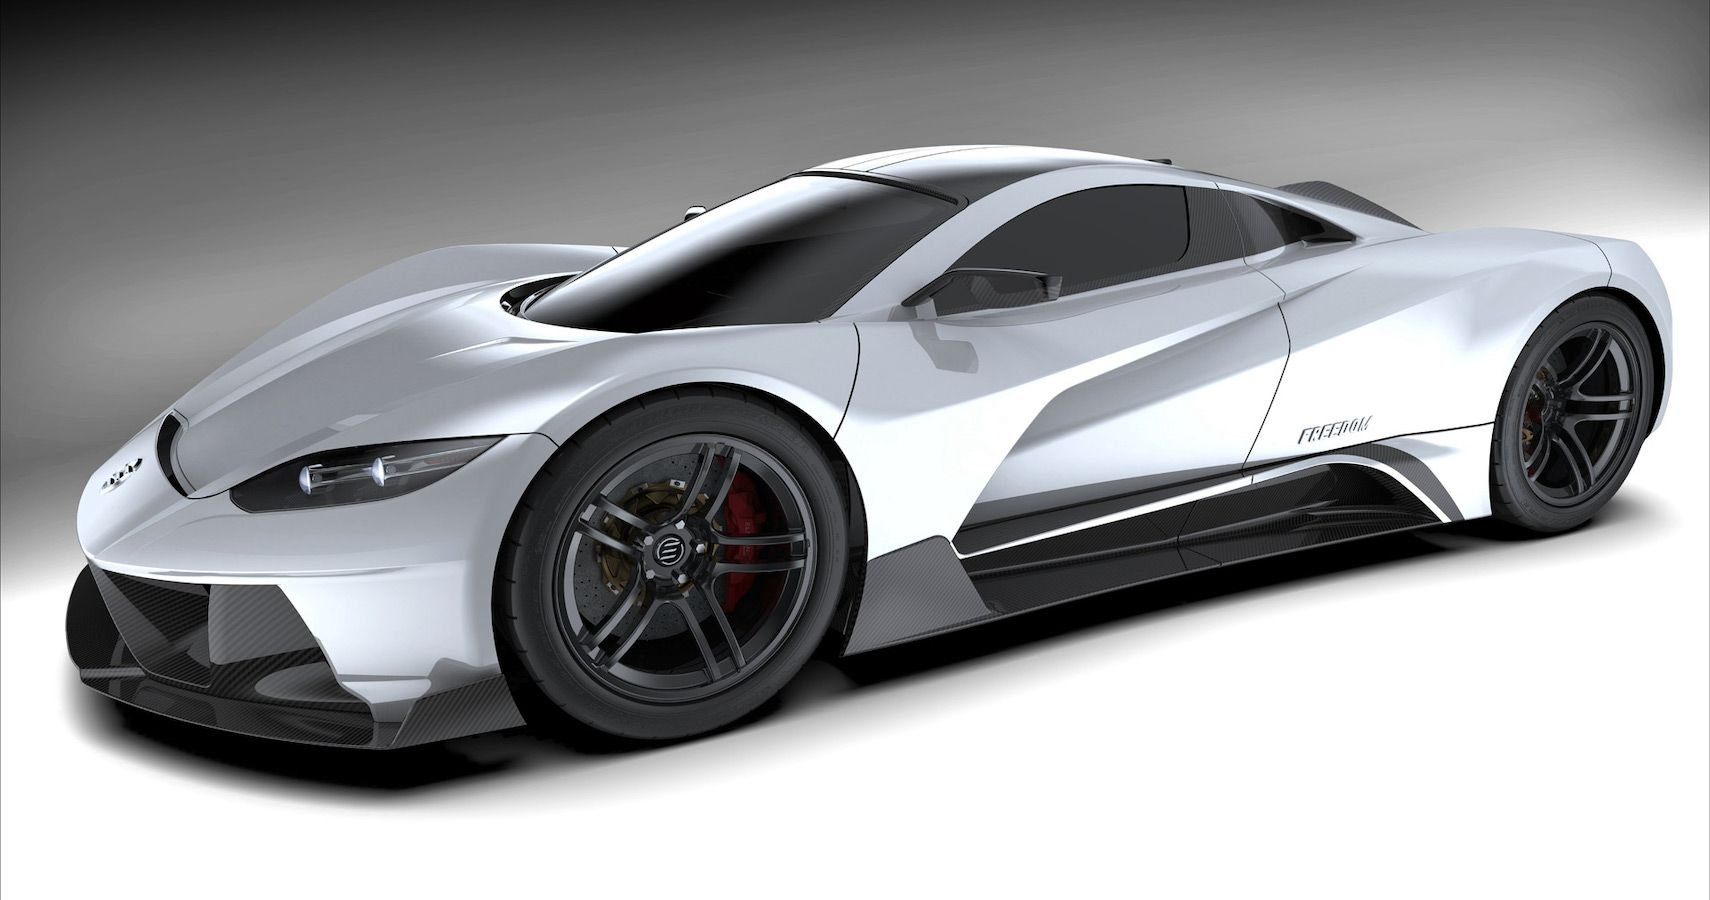 Elation Announces Freedom Hypercar Offering Electric And ICE Versions